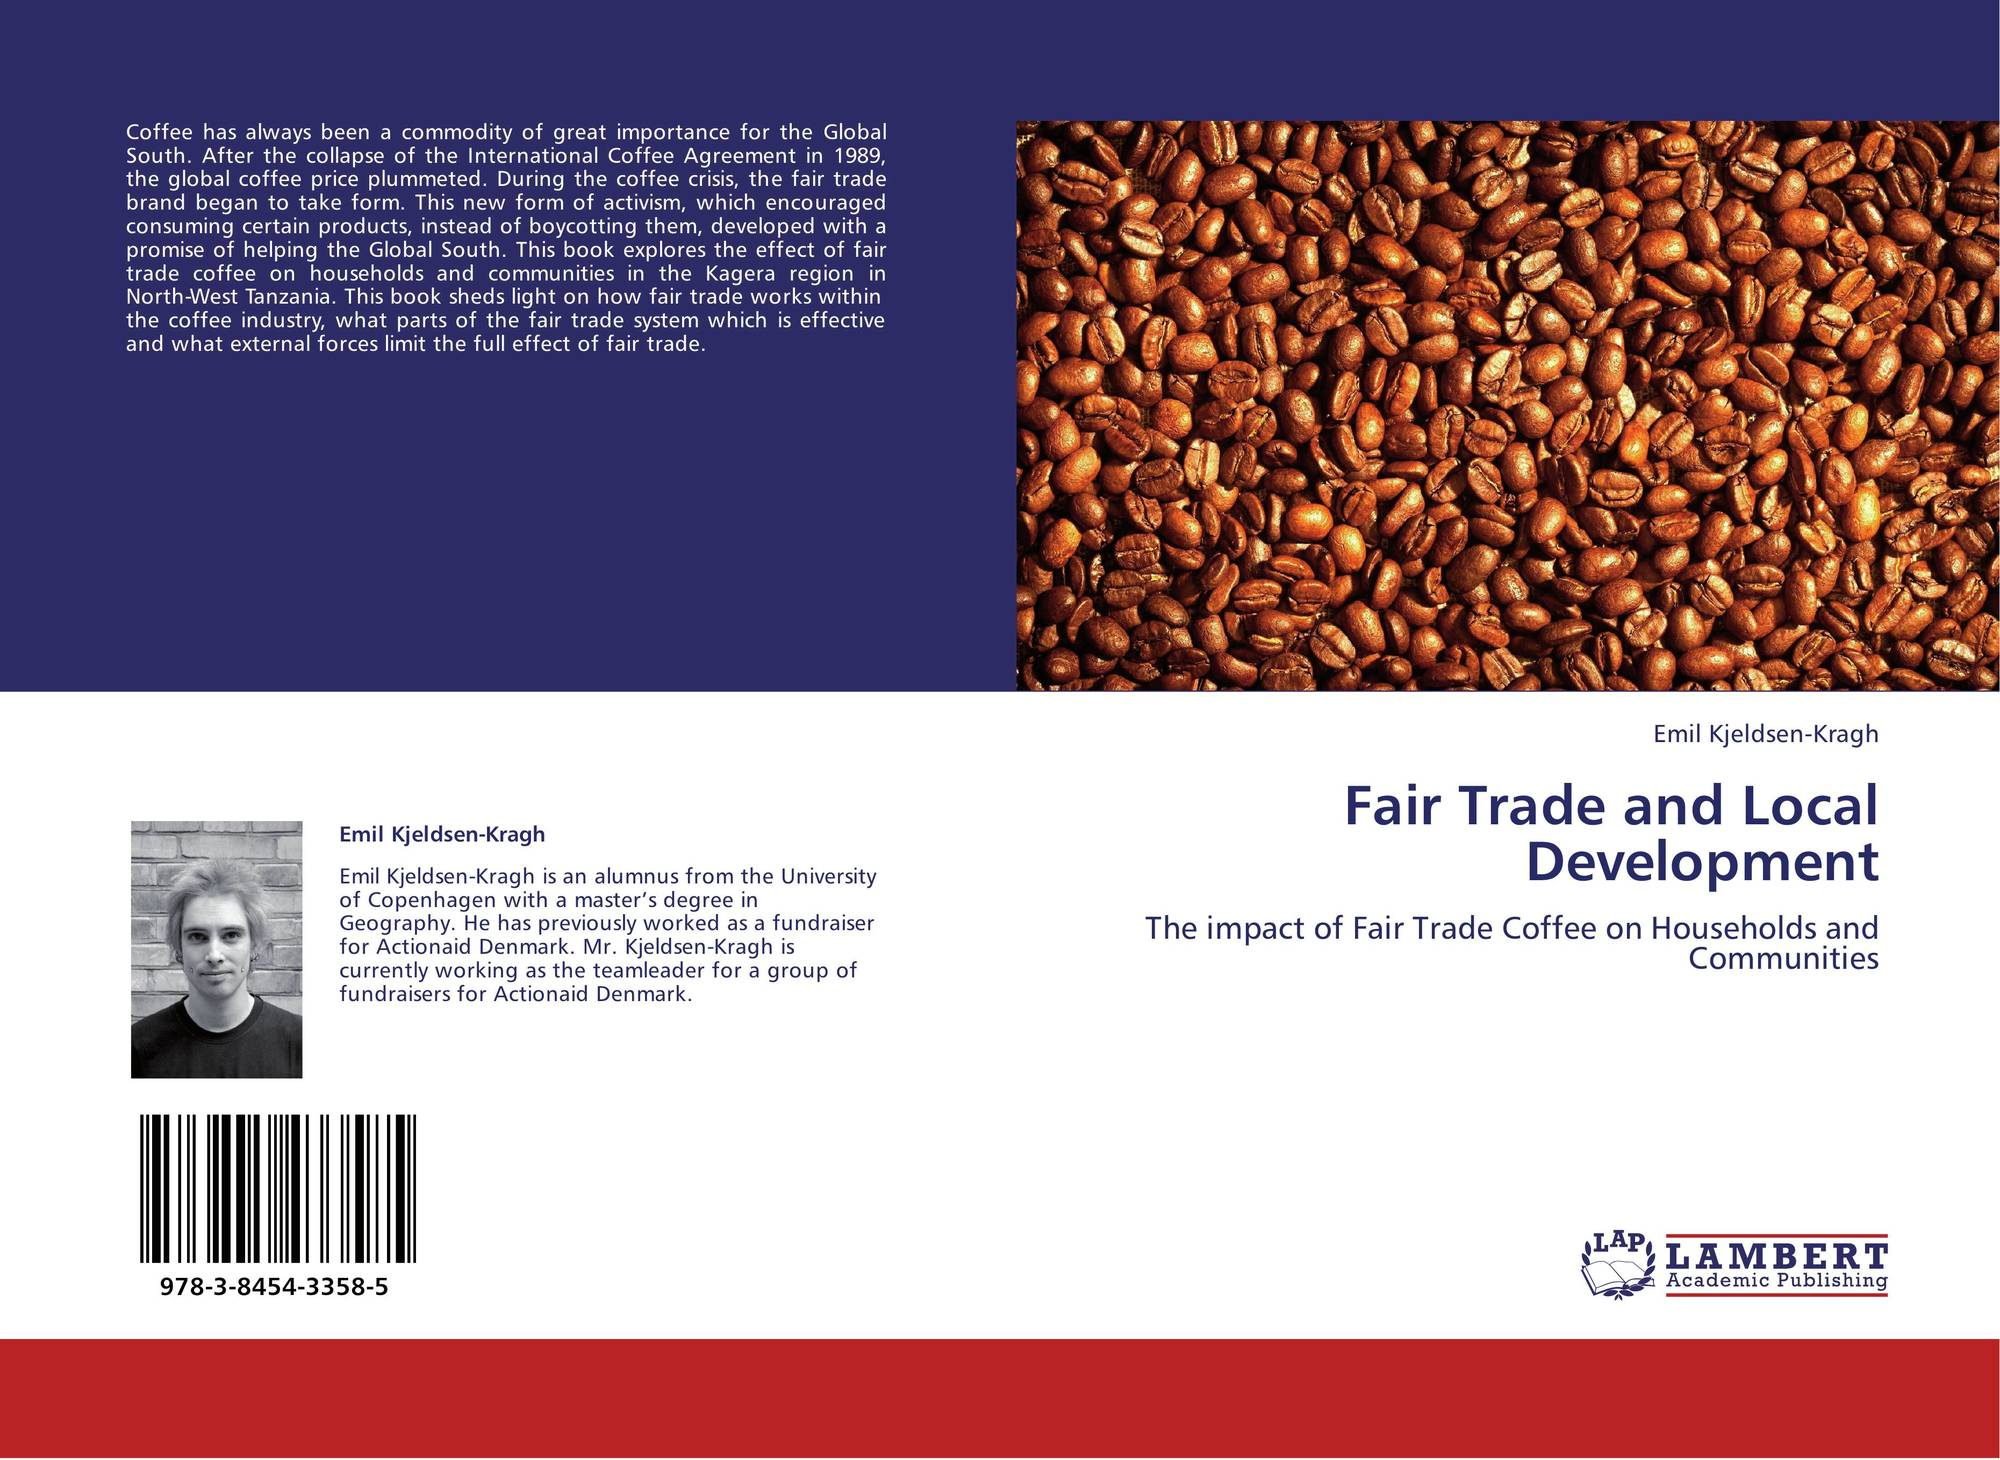 Over the past two decades, sales of fair trade coffee have grown significantly and the fair trade network has emerged